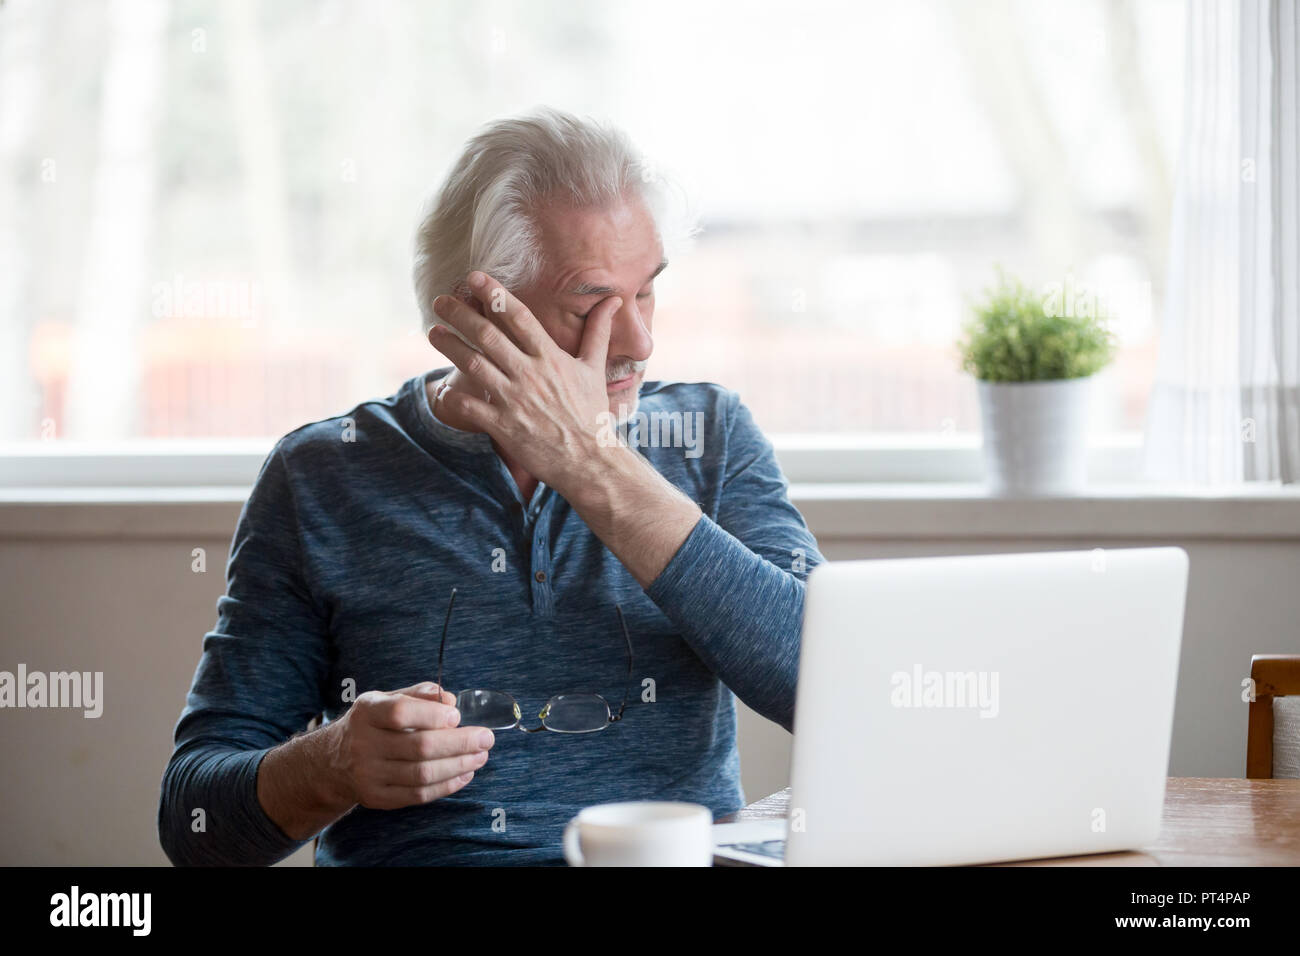 Fatigued mature man taking off glasses suffering from tired eyes - Stock Image